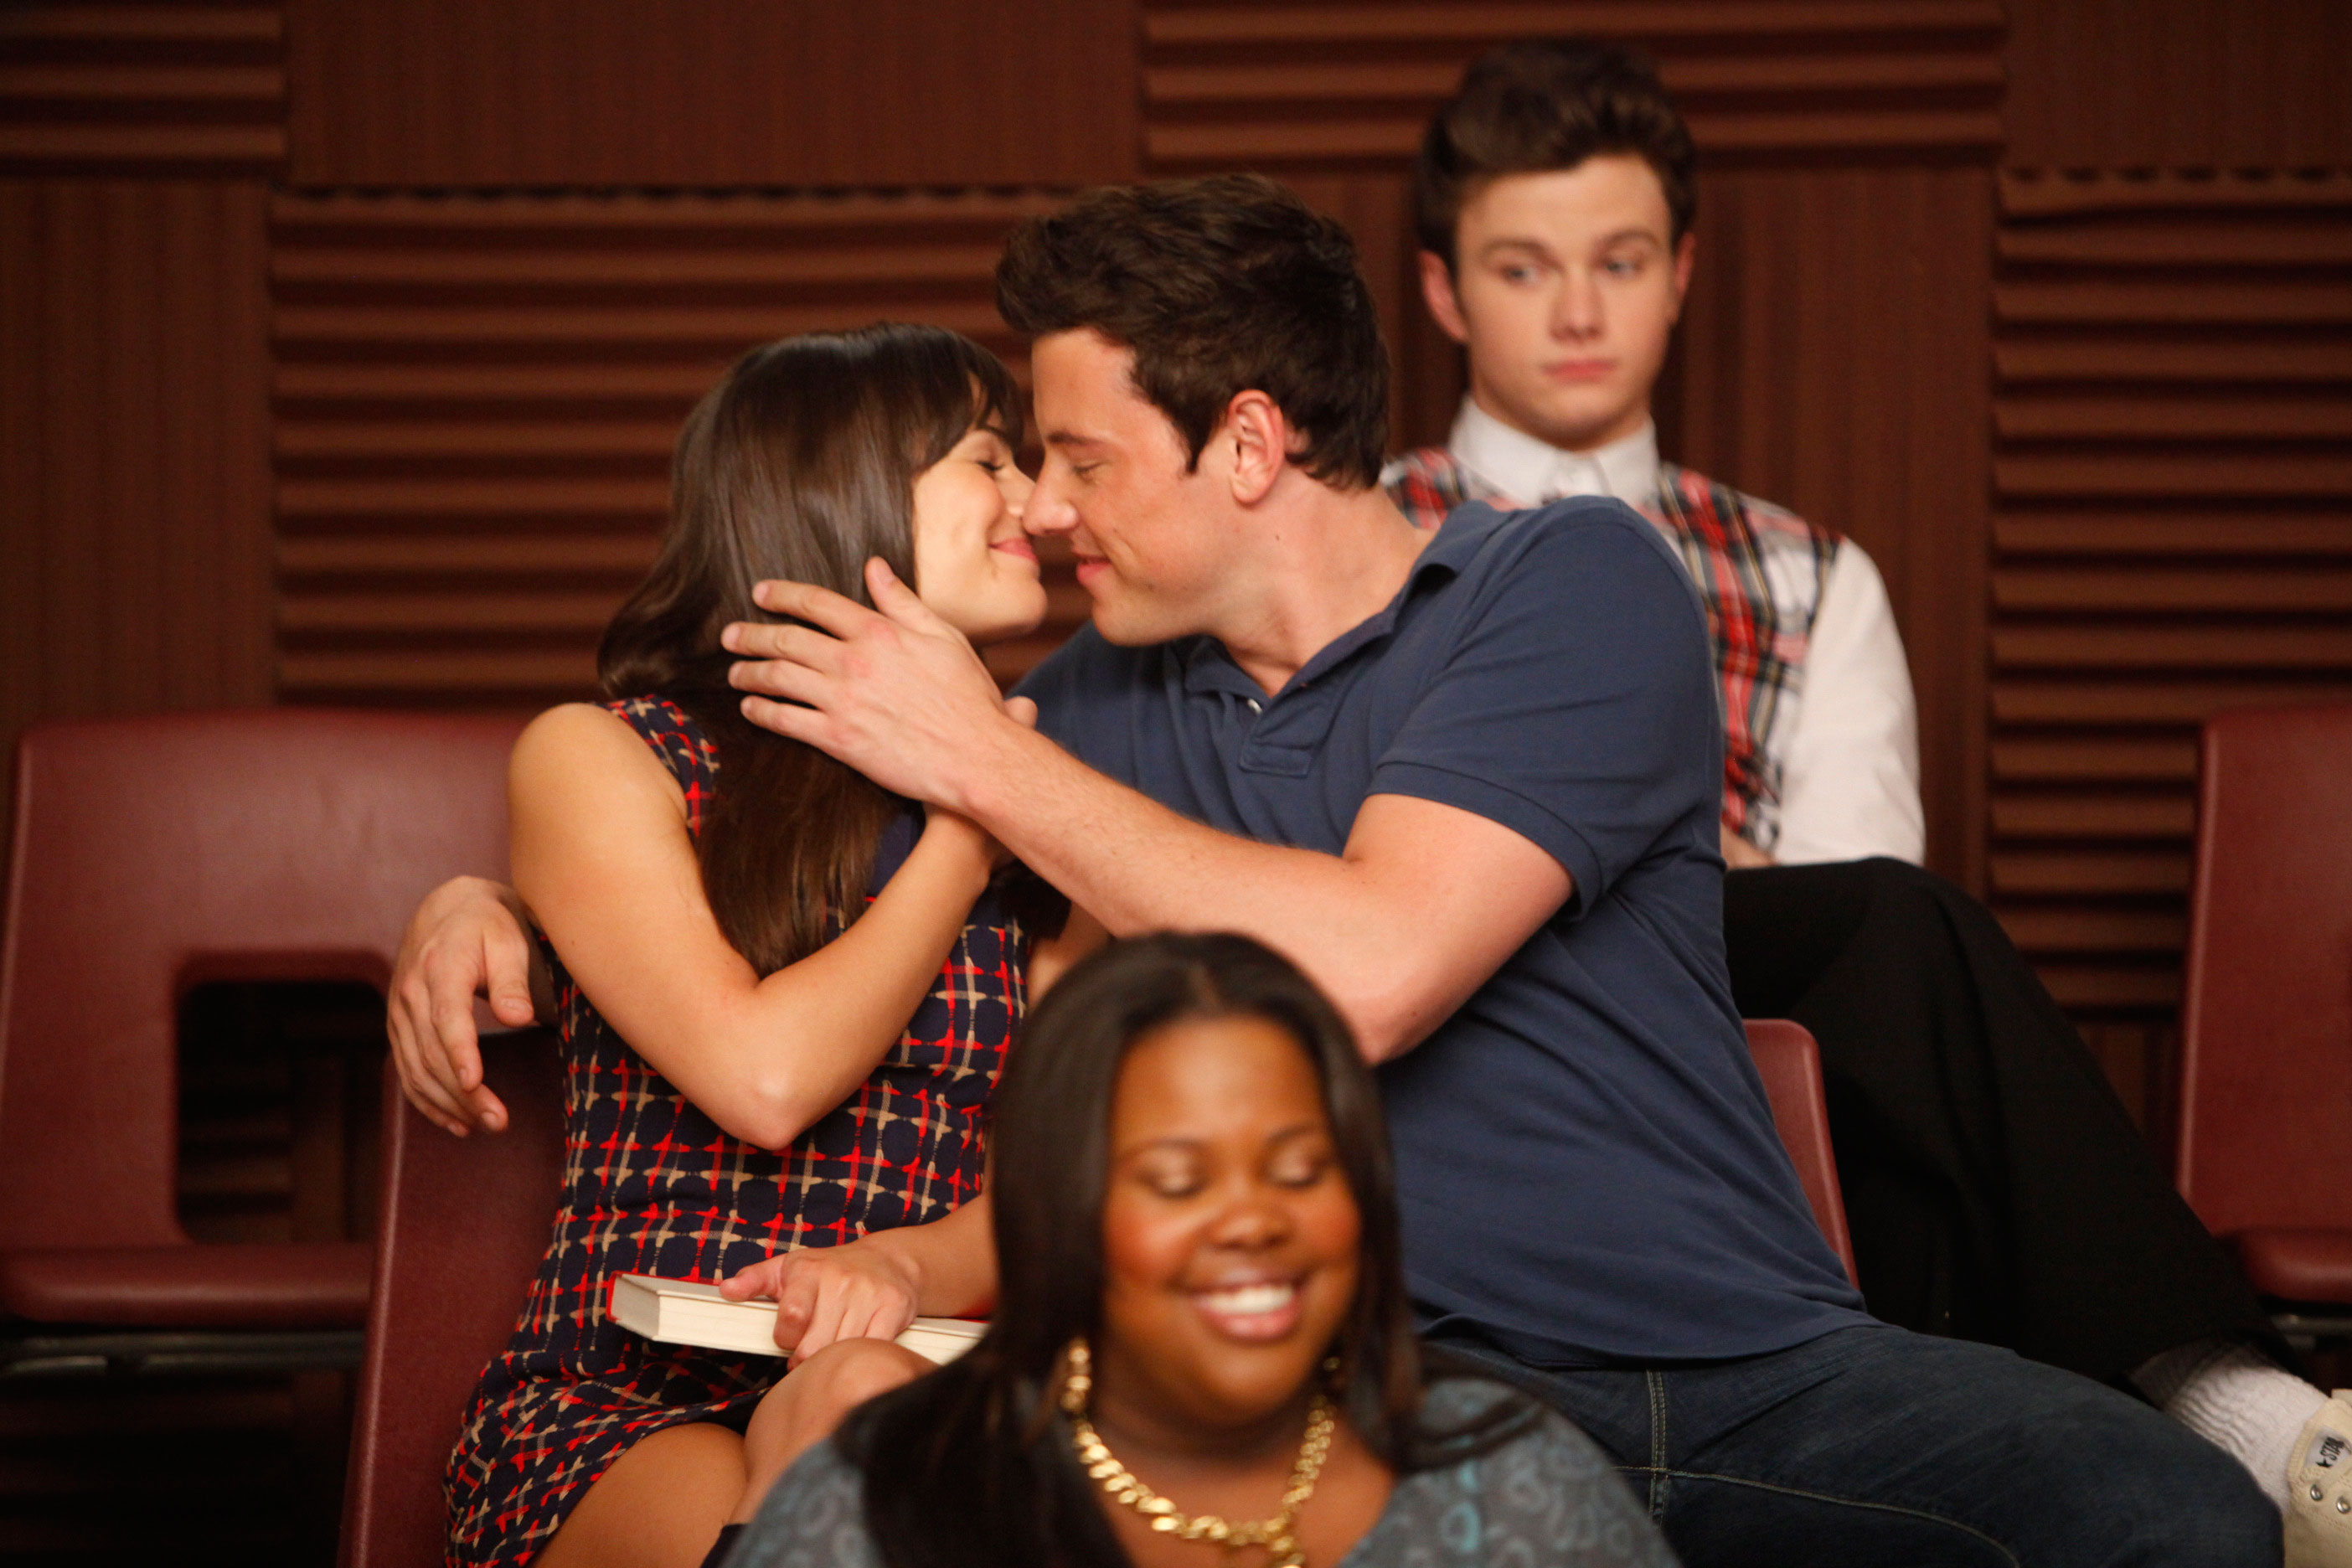 TV Couples Who Dated IRL Finn and Rachel Glee - Throughout the six-year span of Glee , costars Lea Michele and Cory Monteith had an on-off relationship up until his death in 2013.